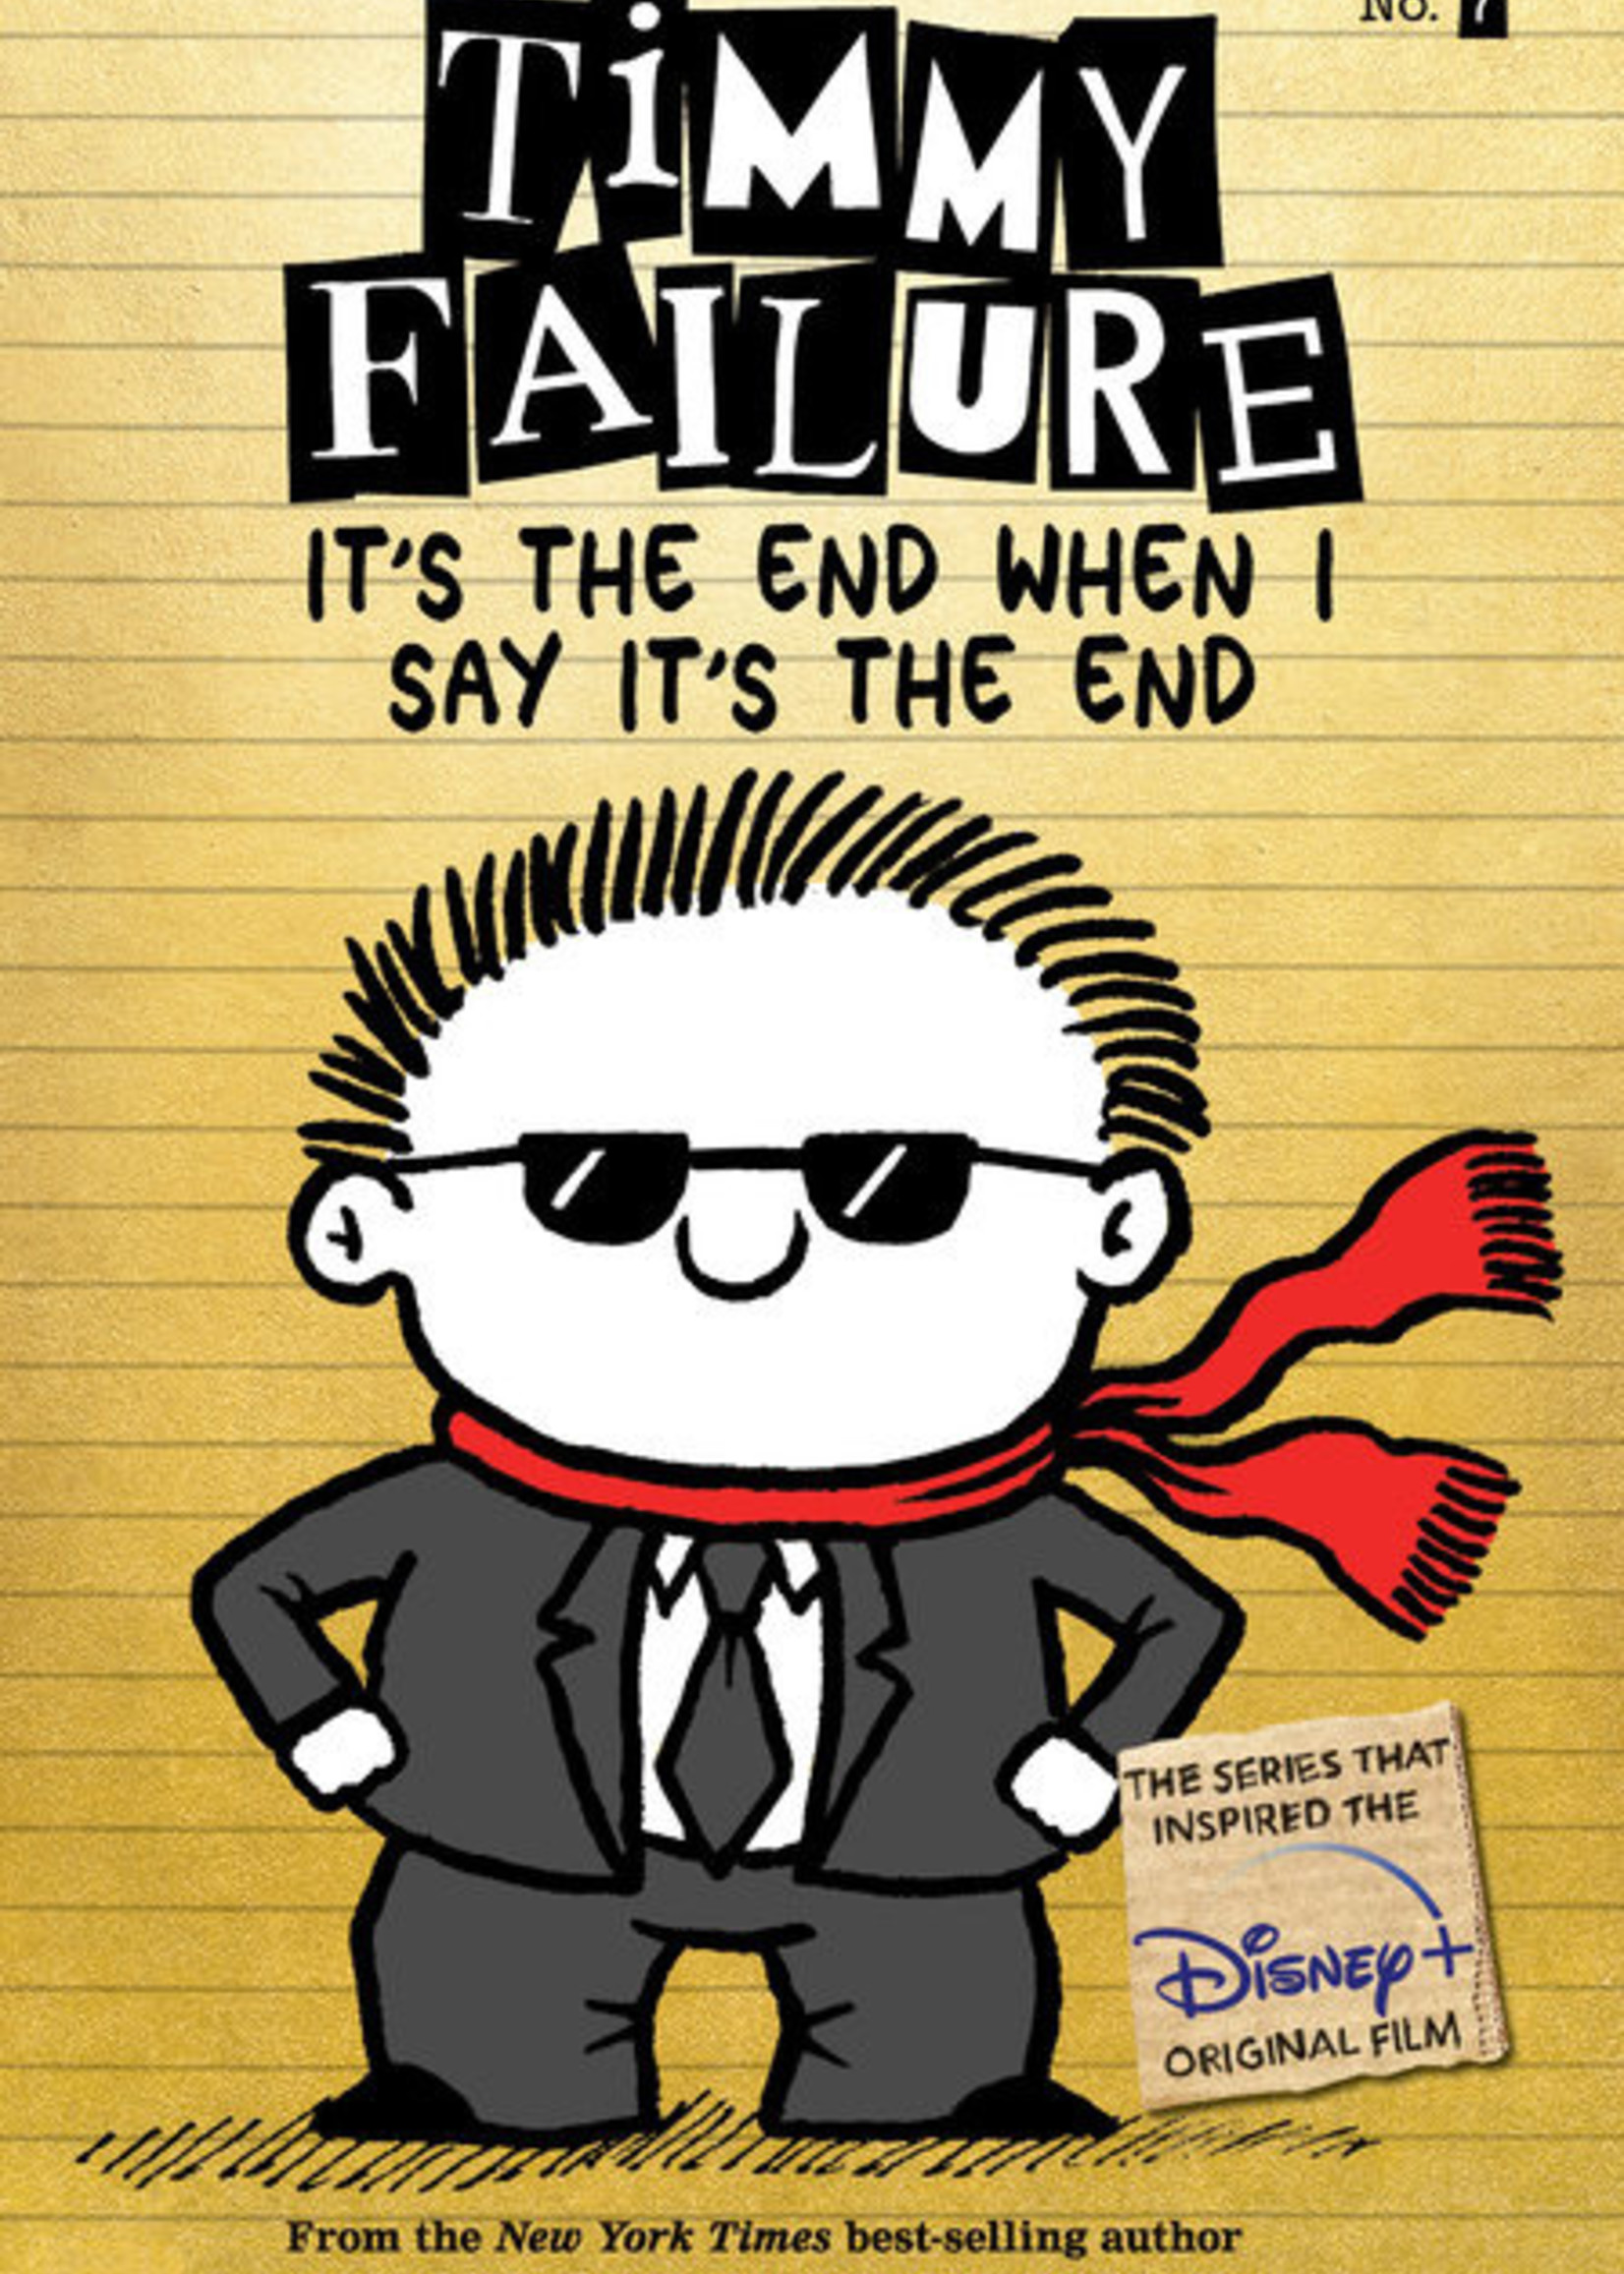 Timmy Failure #07,  It's the End When I Say It's the End Illutrated Novel - Paperback